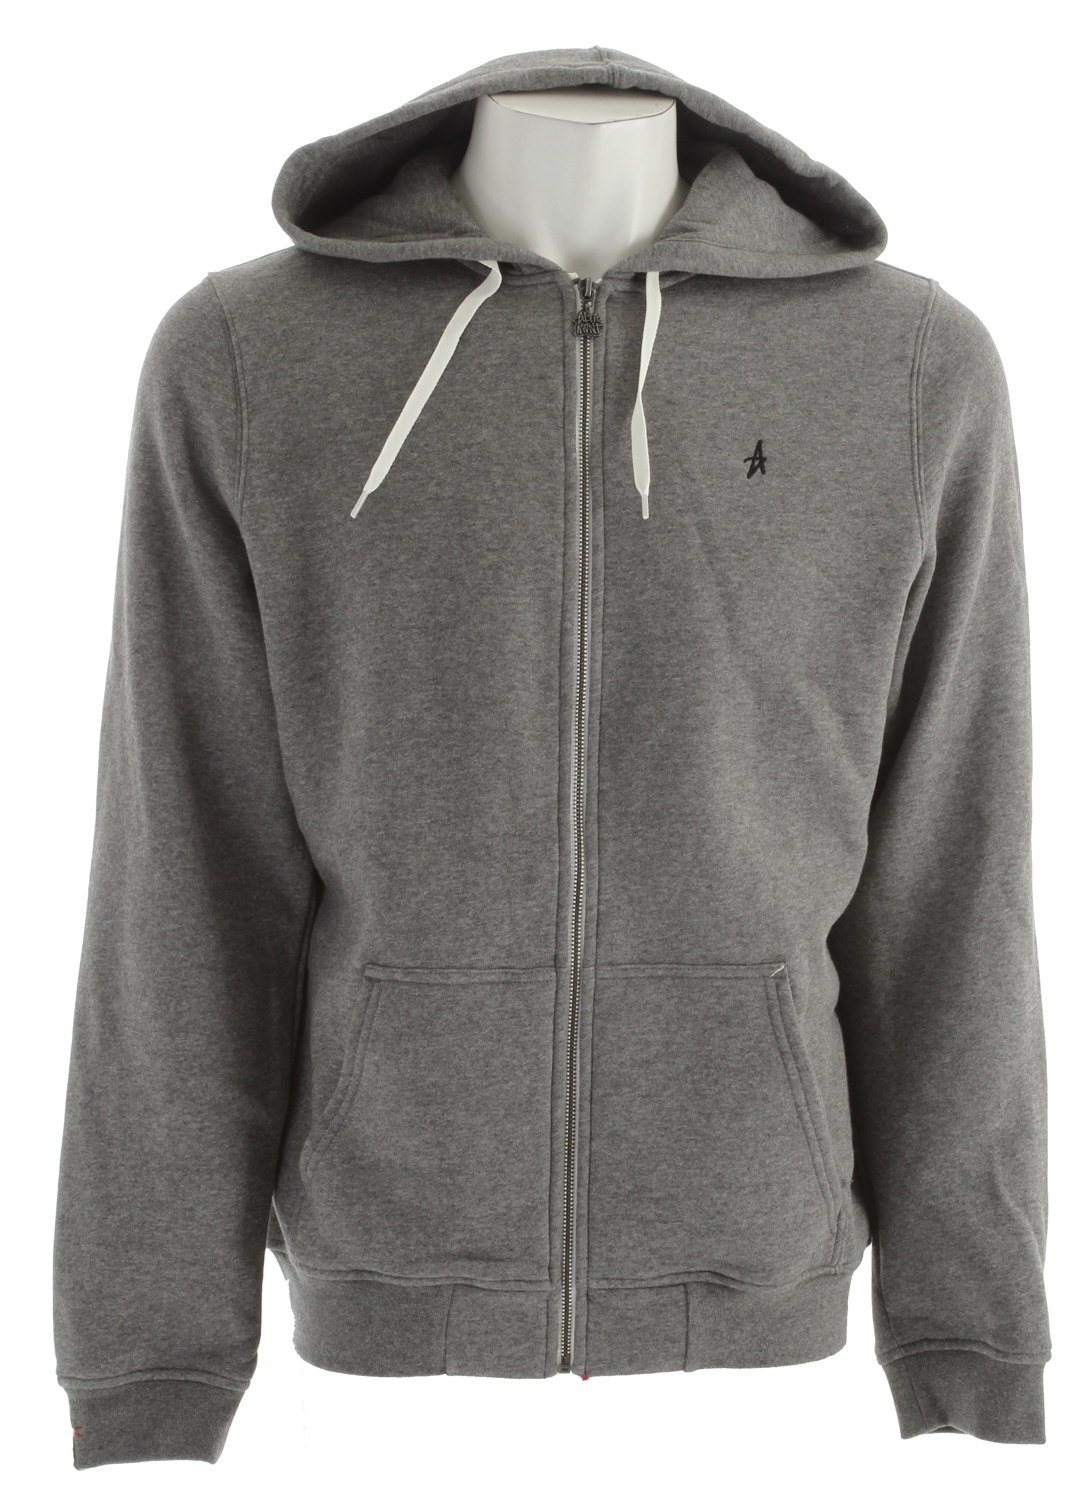 "Key Features of the Altamont Basic Zip Hoodie: 65% cotton/35% poly 300 gsm zip hood fleece with ""A"" logo embroidery at chest Front pouch pockets and Altamont custom trim package - $40.95"